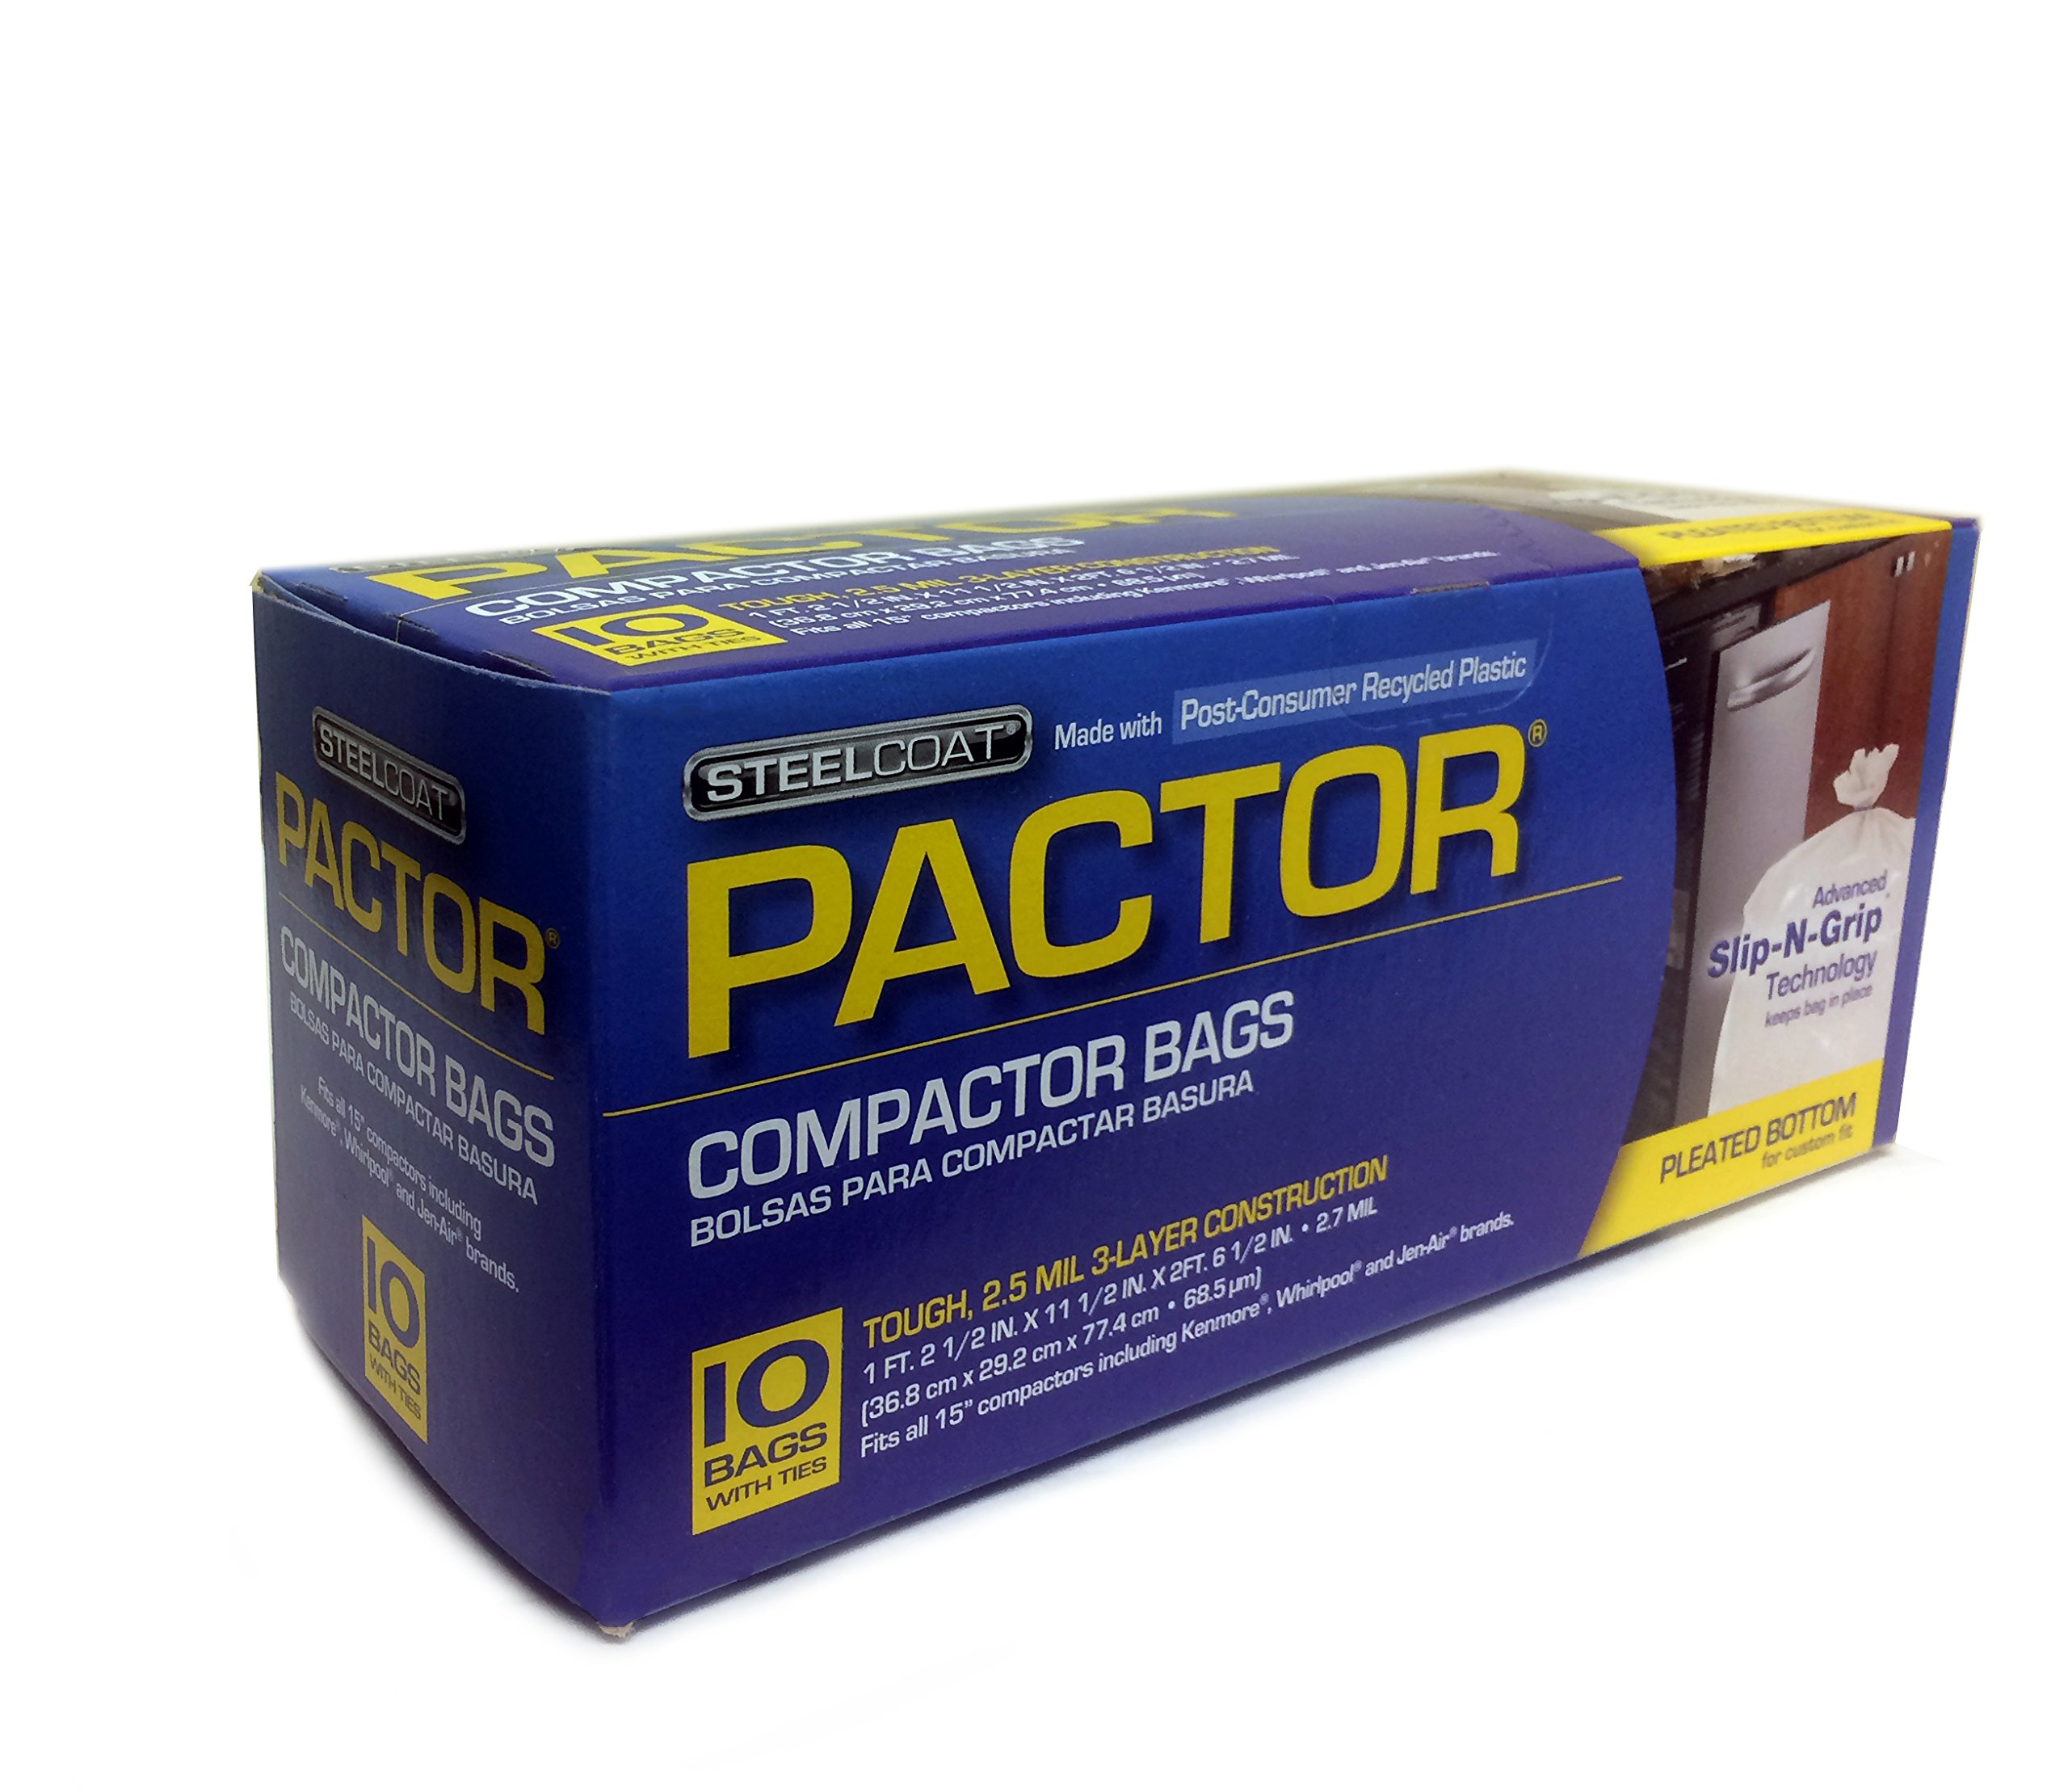 STEELCOAT FG-P9941-29A Pactor Bag